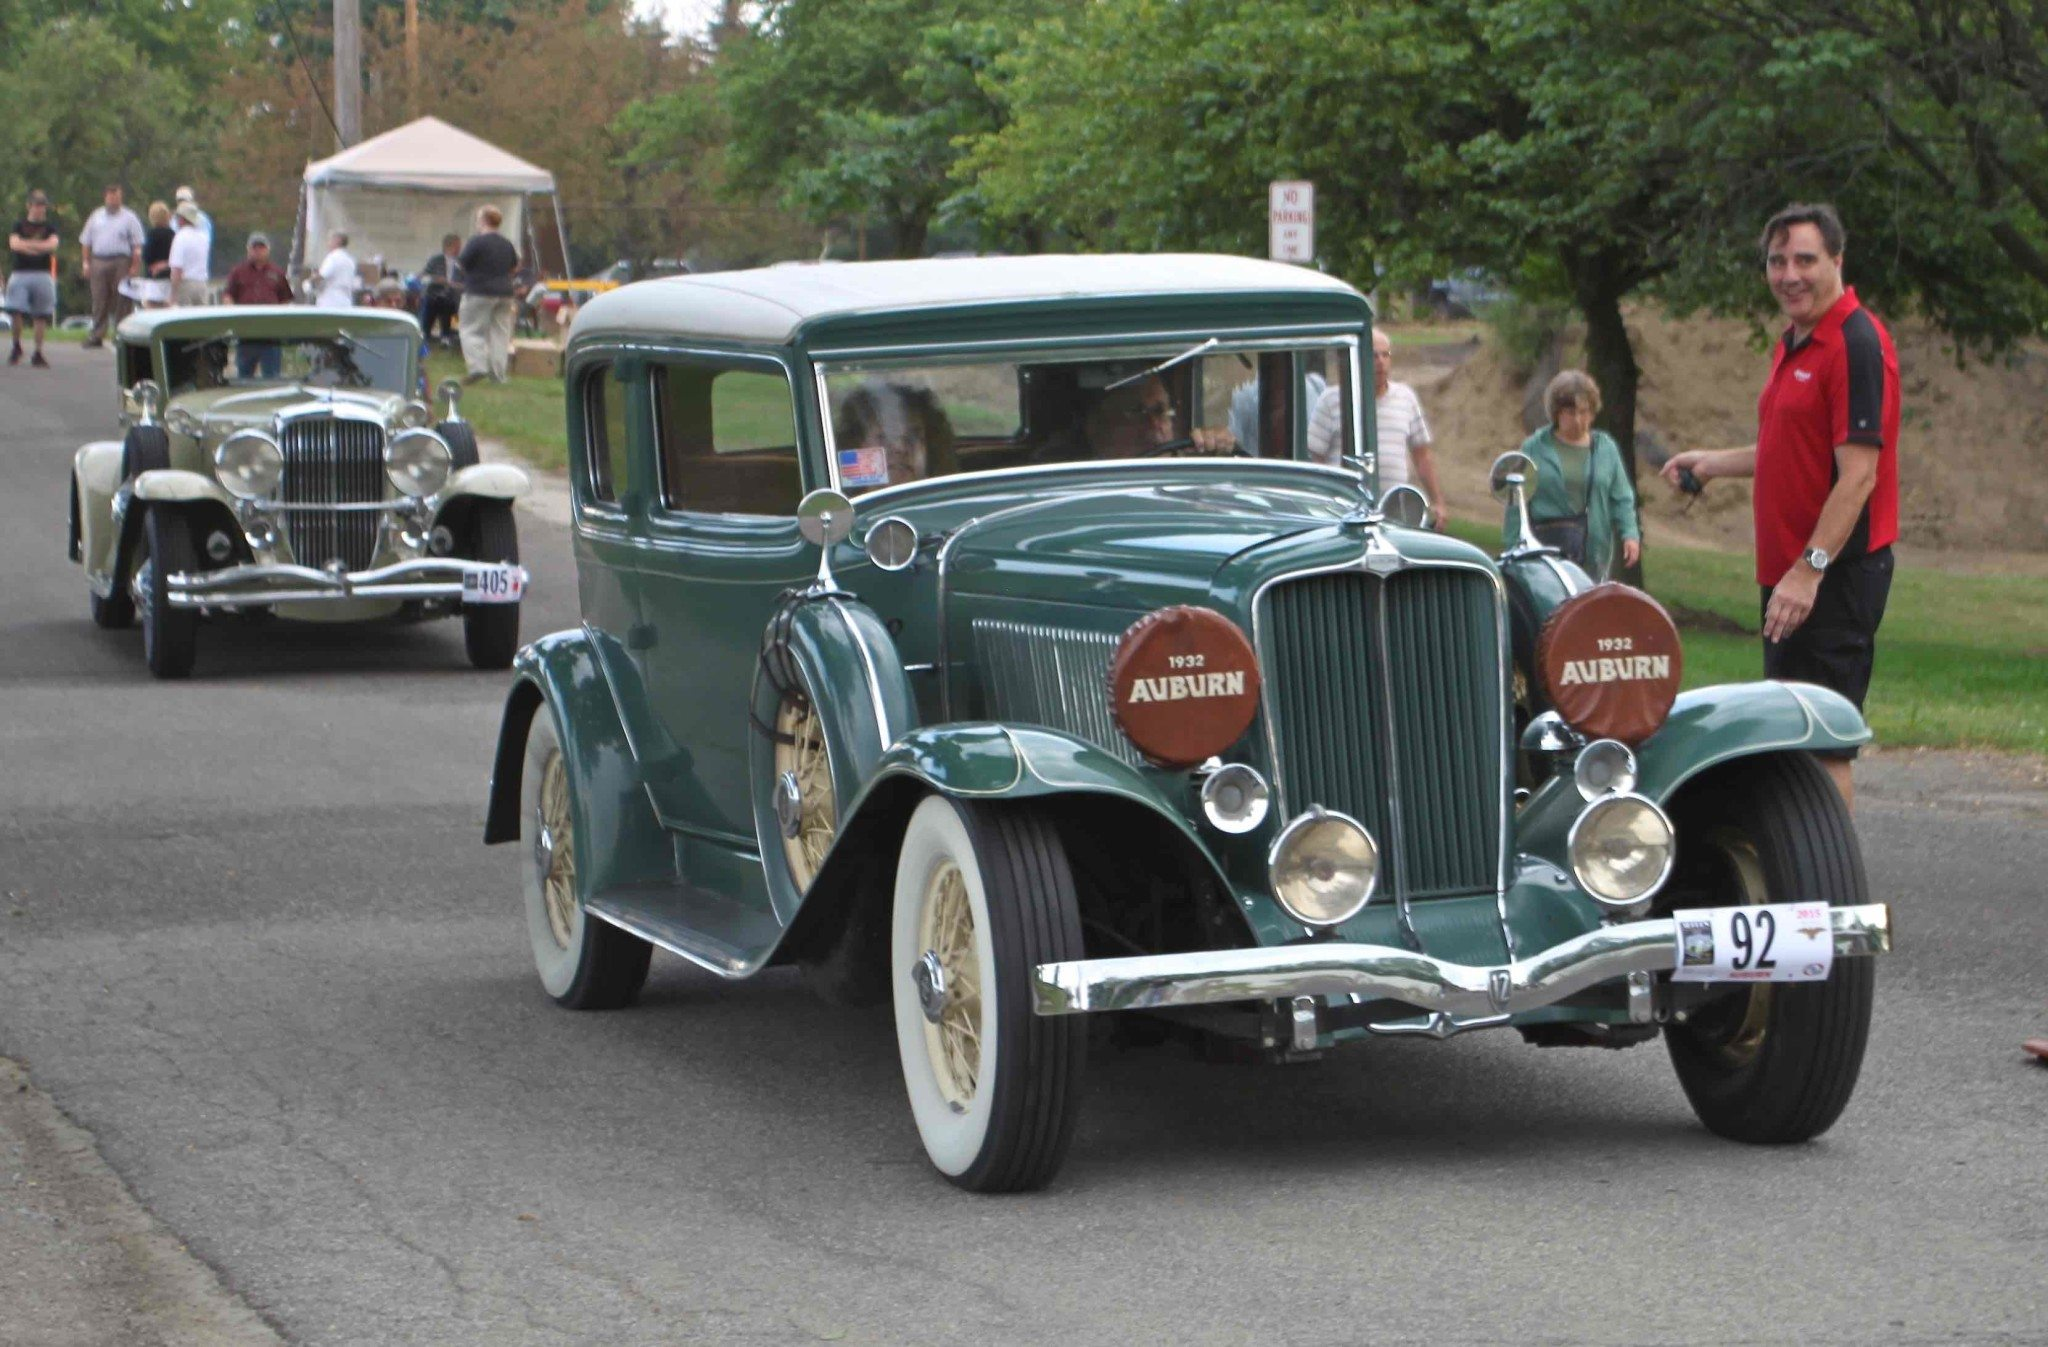 Join Heacock Classic In Hershey Oct Heacock Classic Insurance - Hershey car show schedule